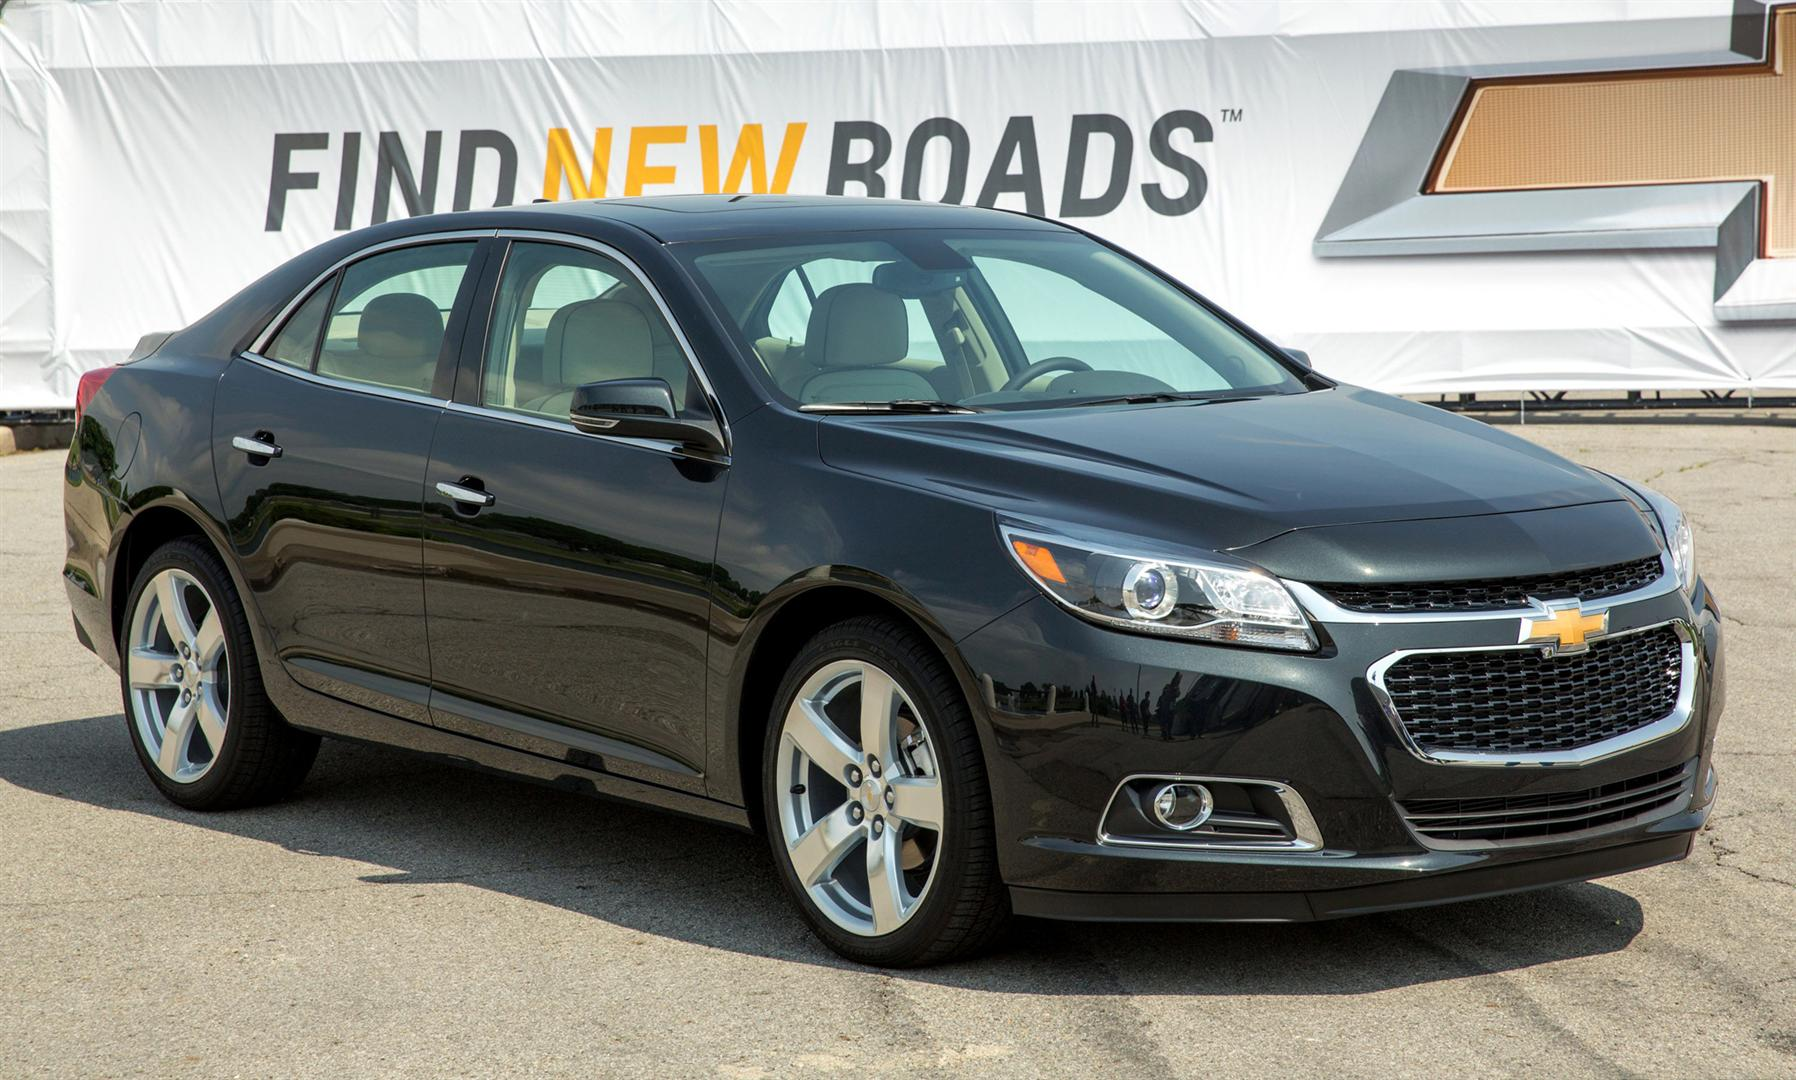 2018 Chevy Malibu Hybrid Wagon MPG and Reviews